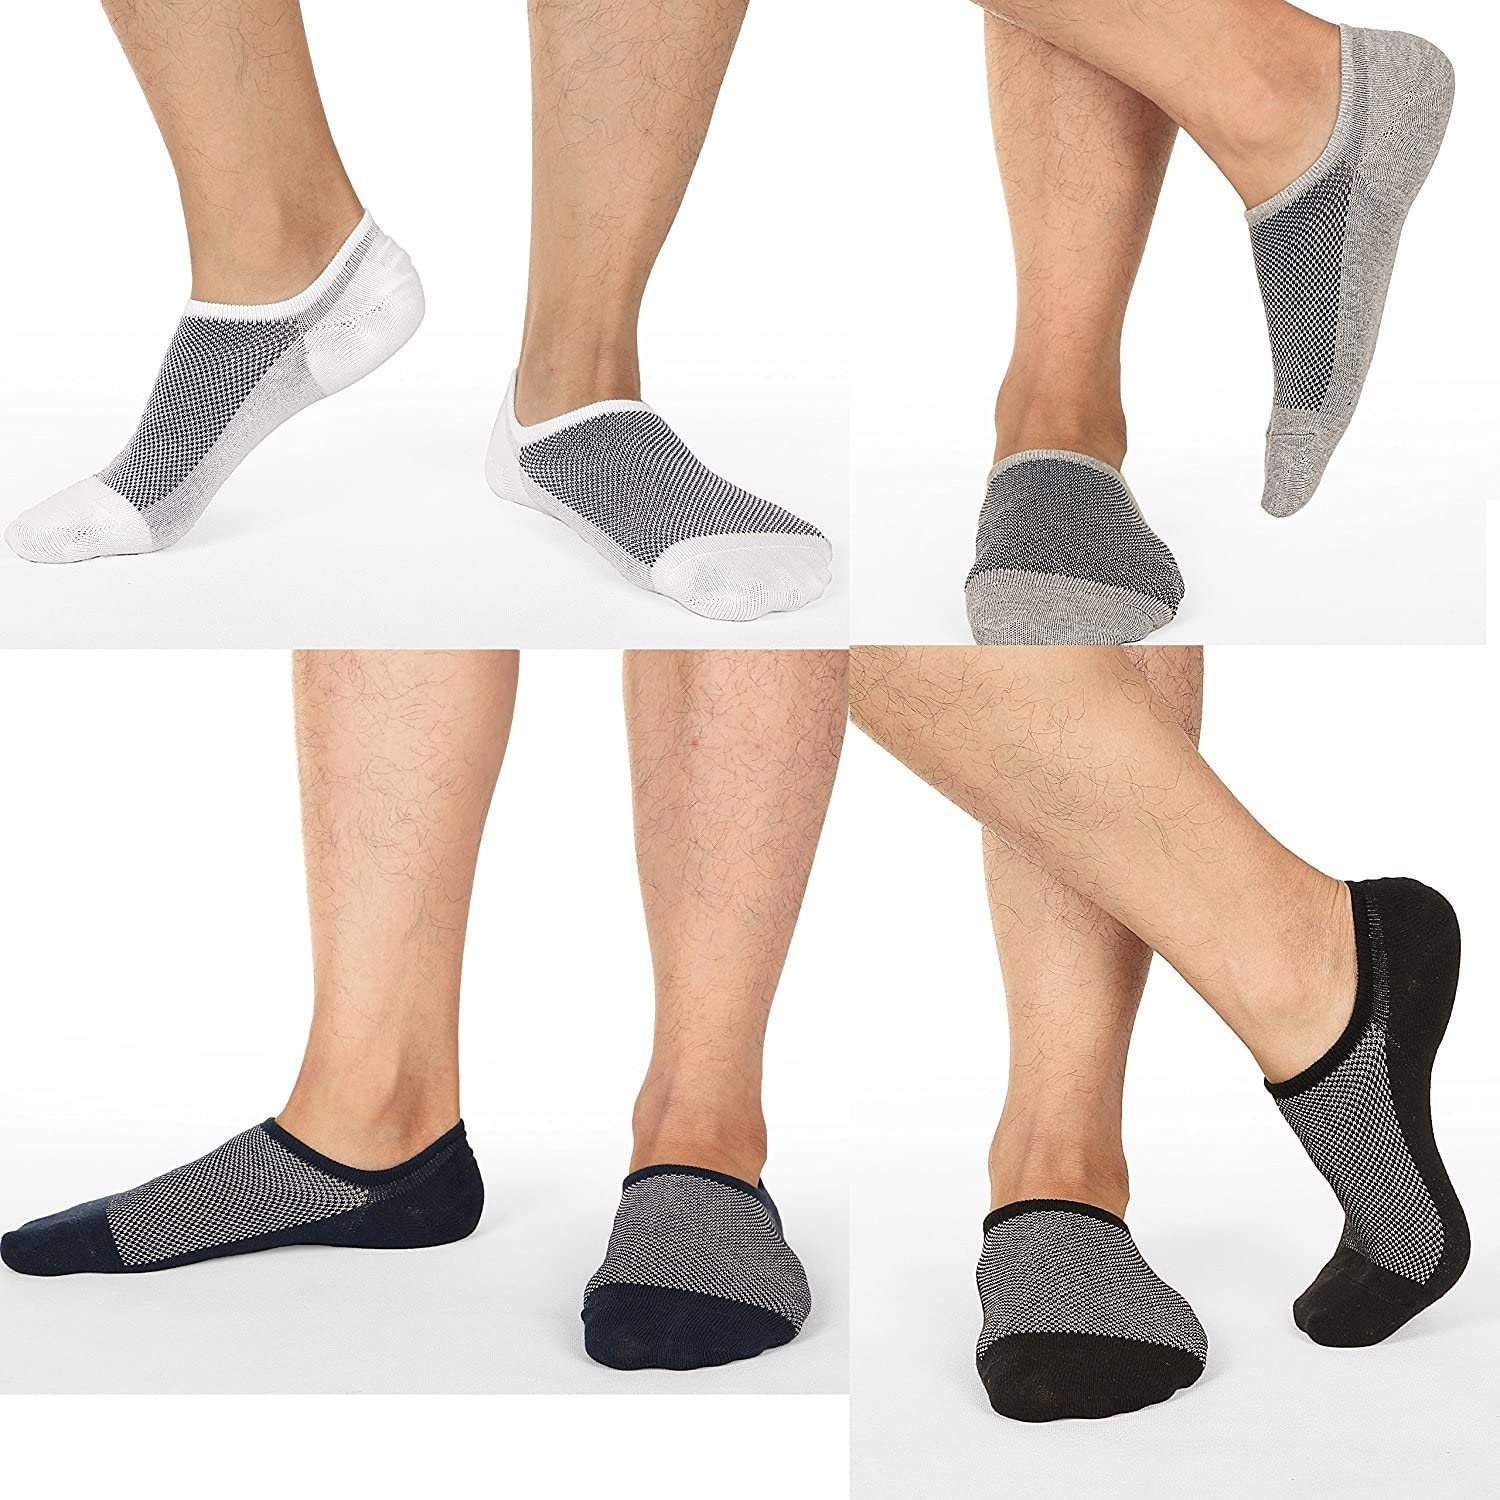 Men's No Show Socks Ultra Low Cut Casual Socks Invisible Boat Shoe Liners with Non-Slip Grip Black/White (3 Pairs Each)